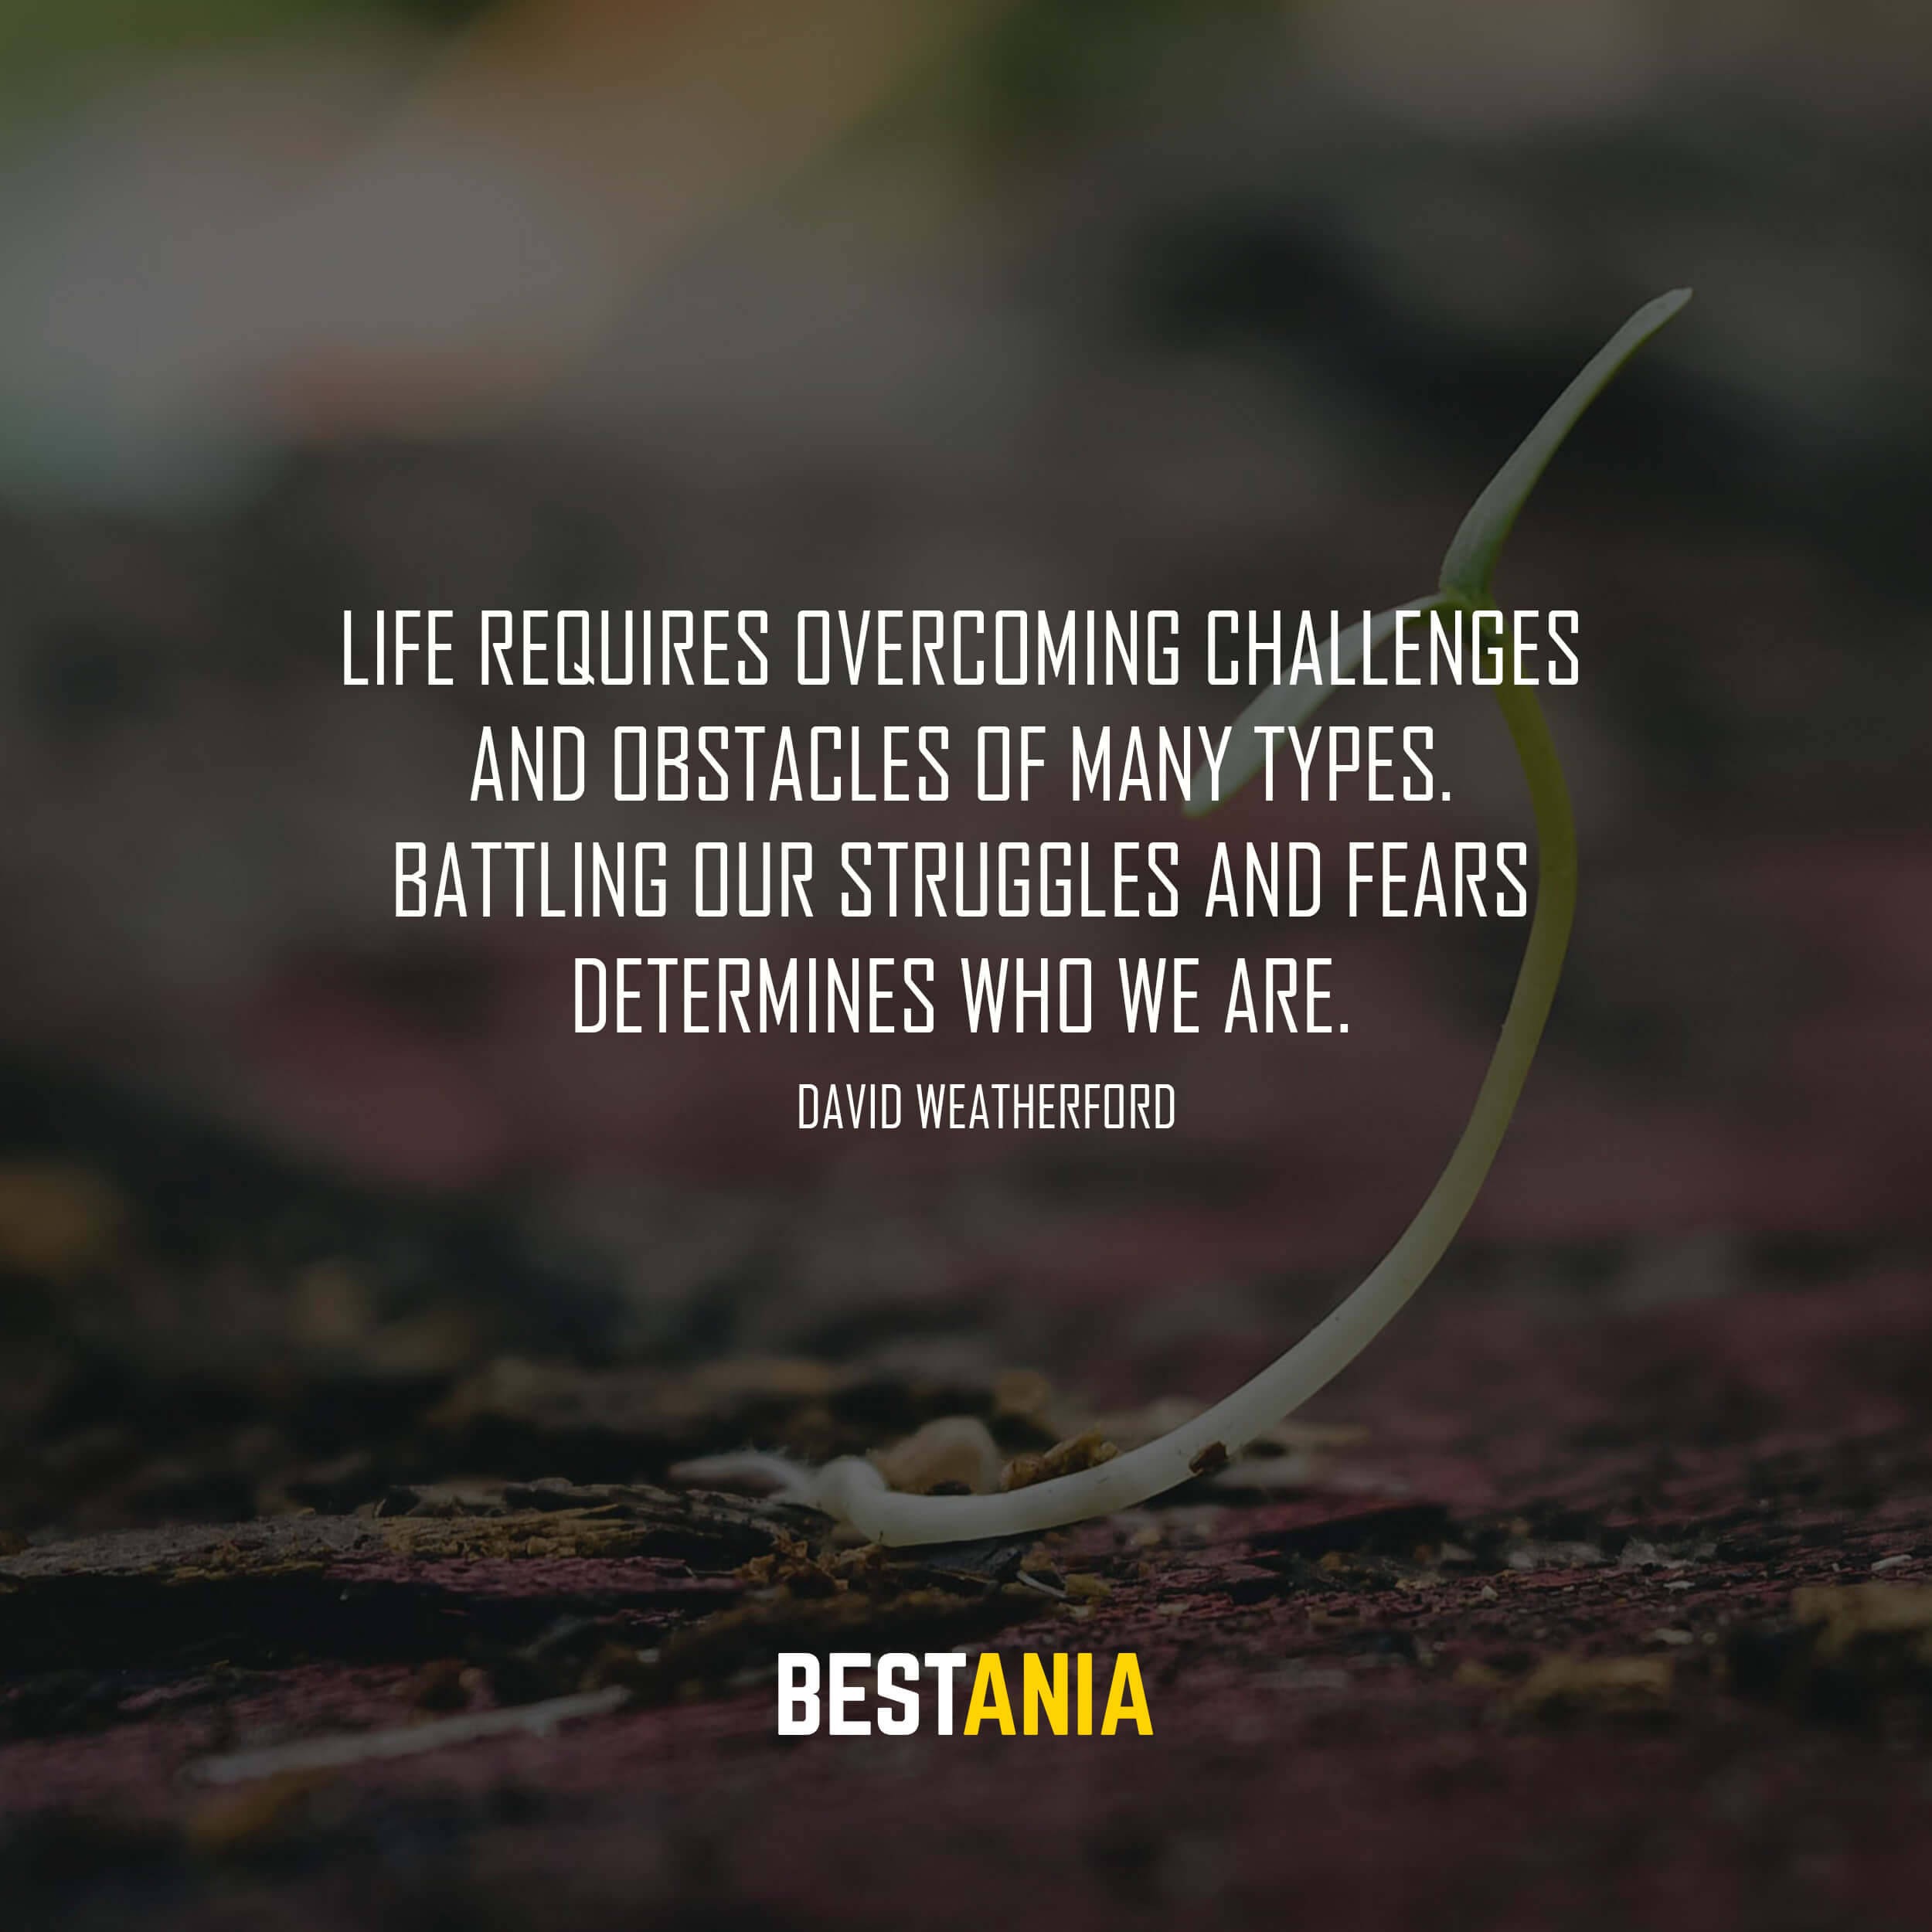 Life requires overcoming challenges and obstacles of many types. Battling our struggles and fears determines who we are. David Weatherford